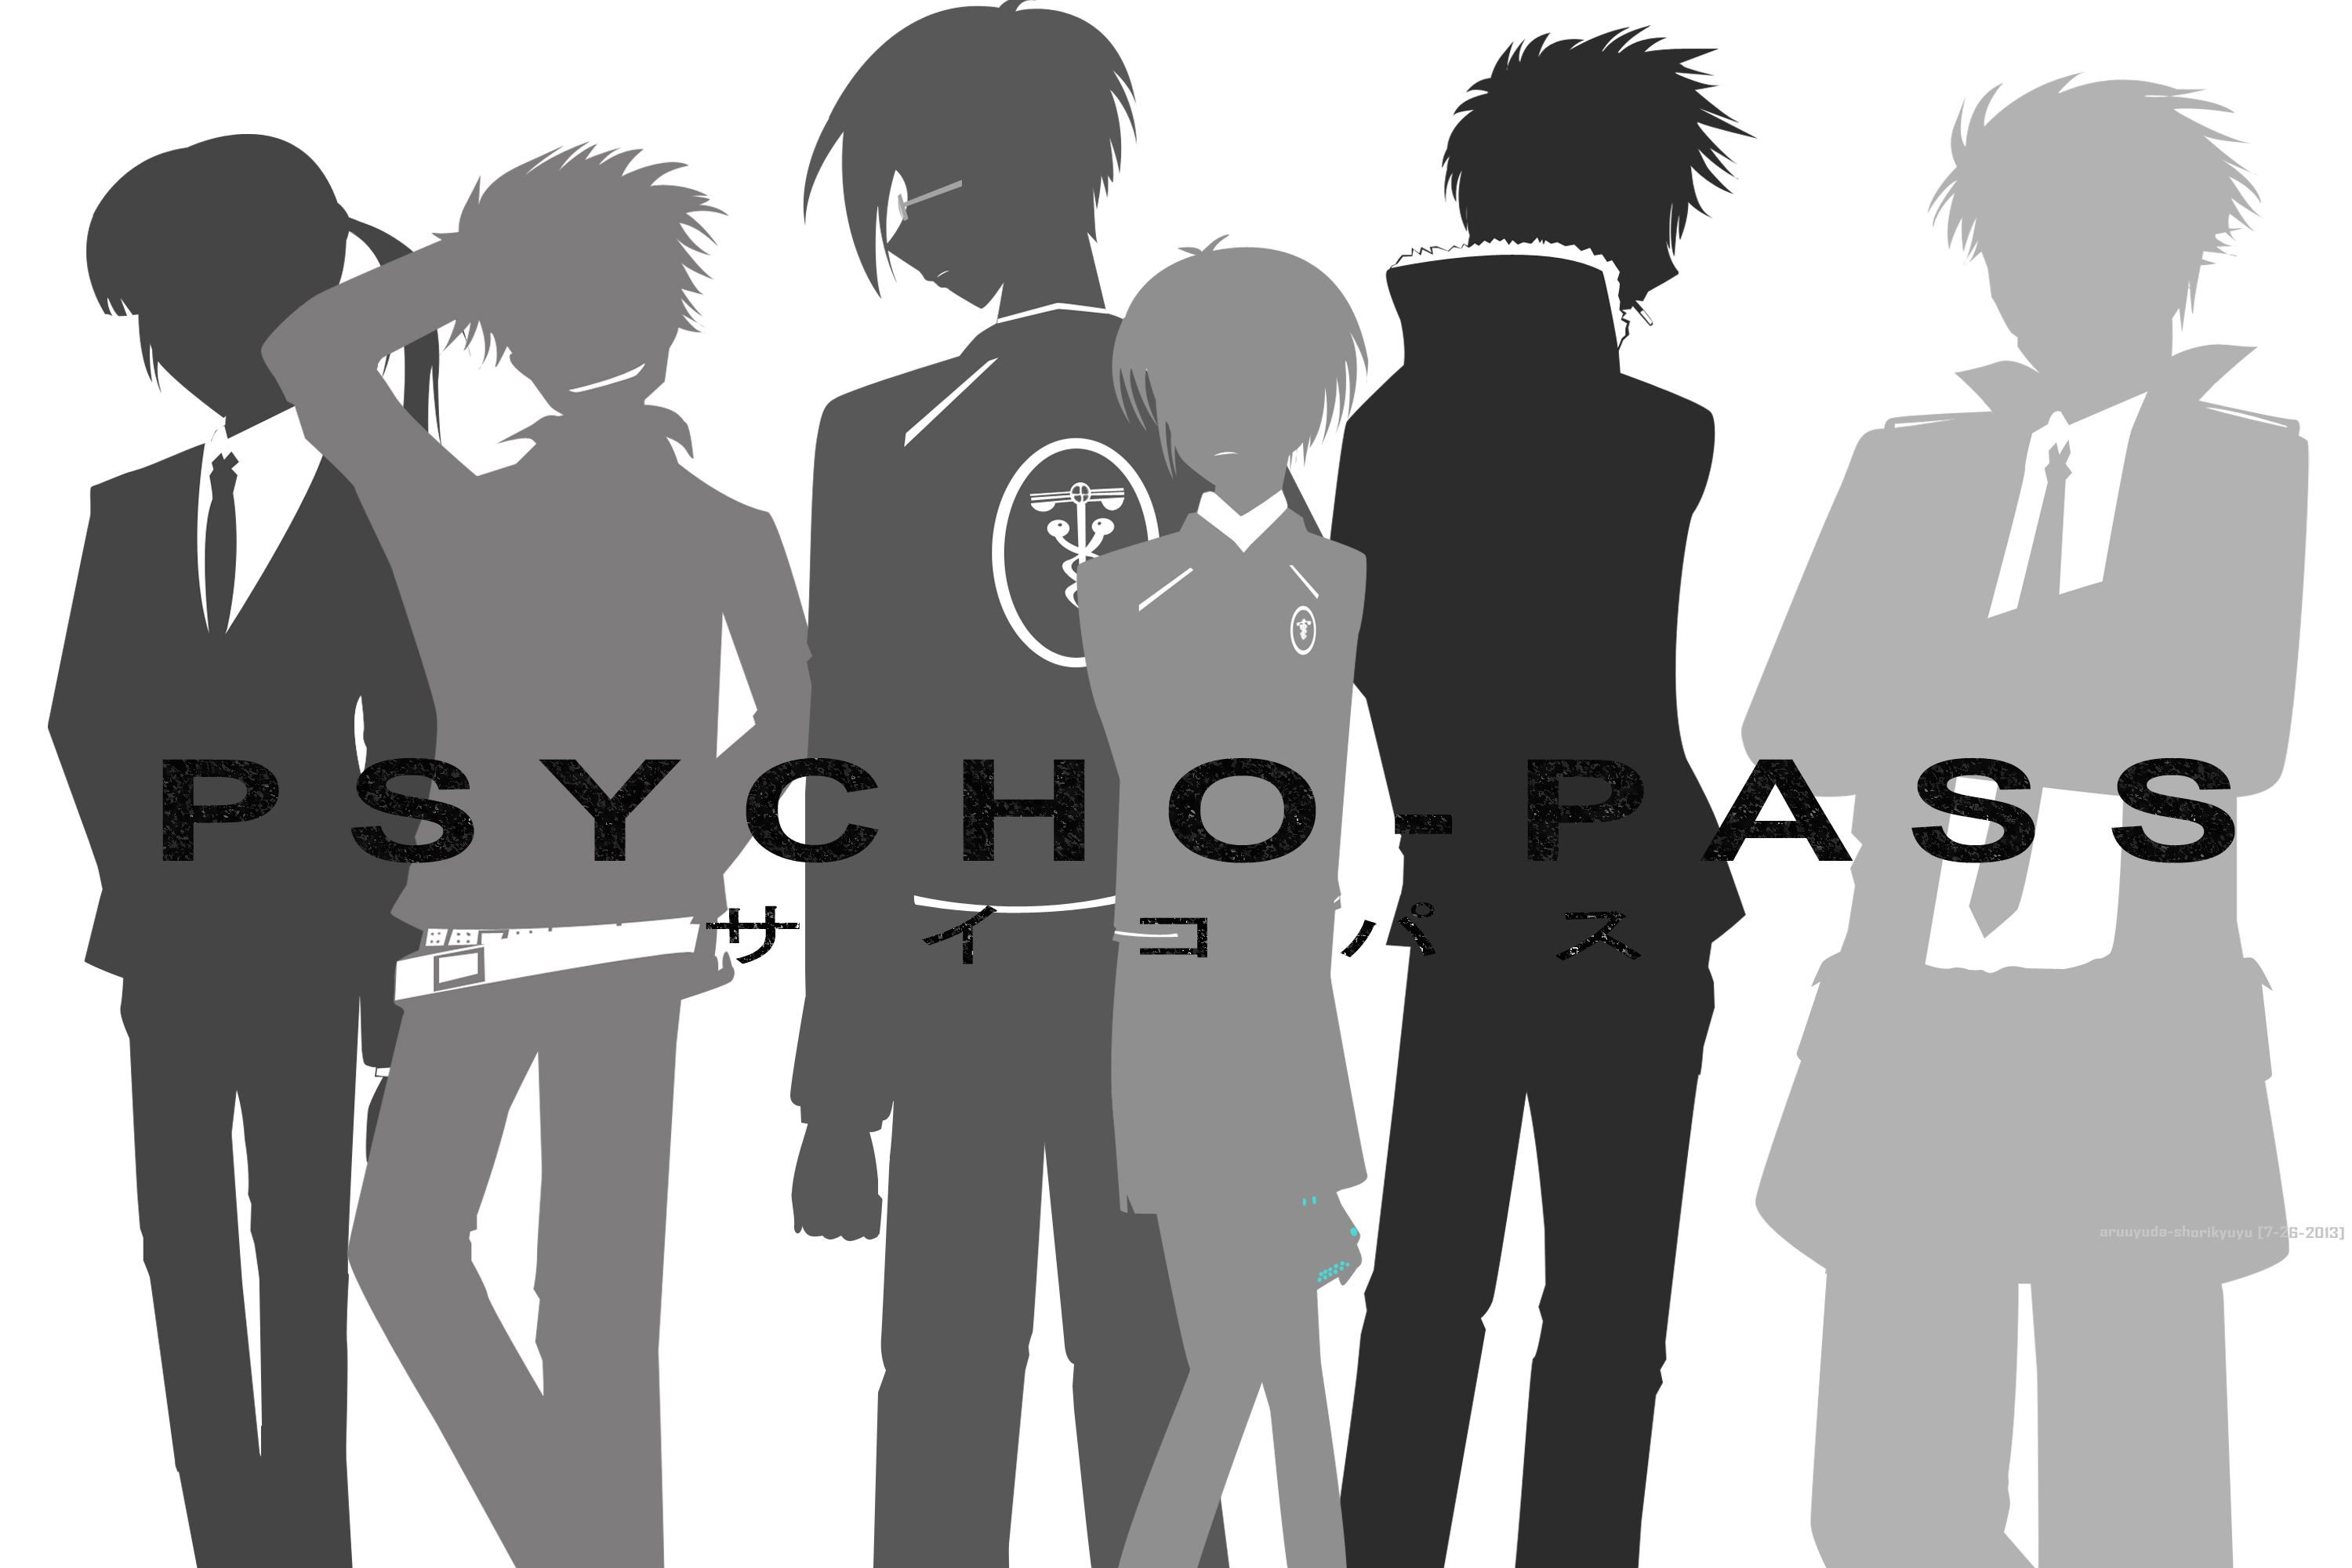 Silhouettes / Psycho pass